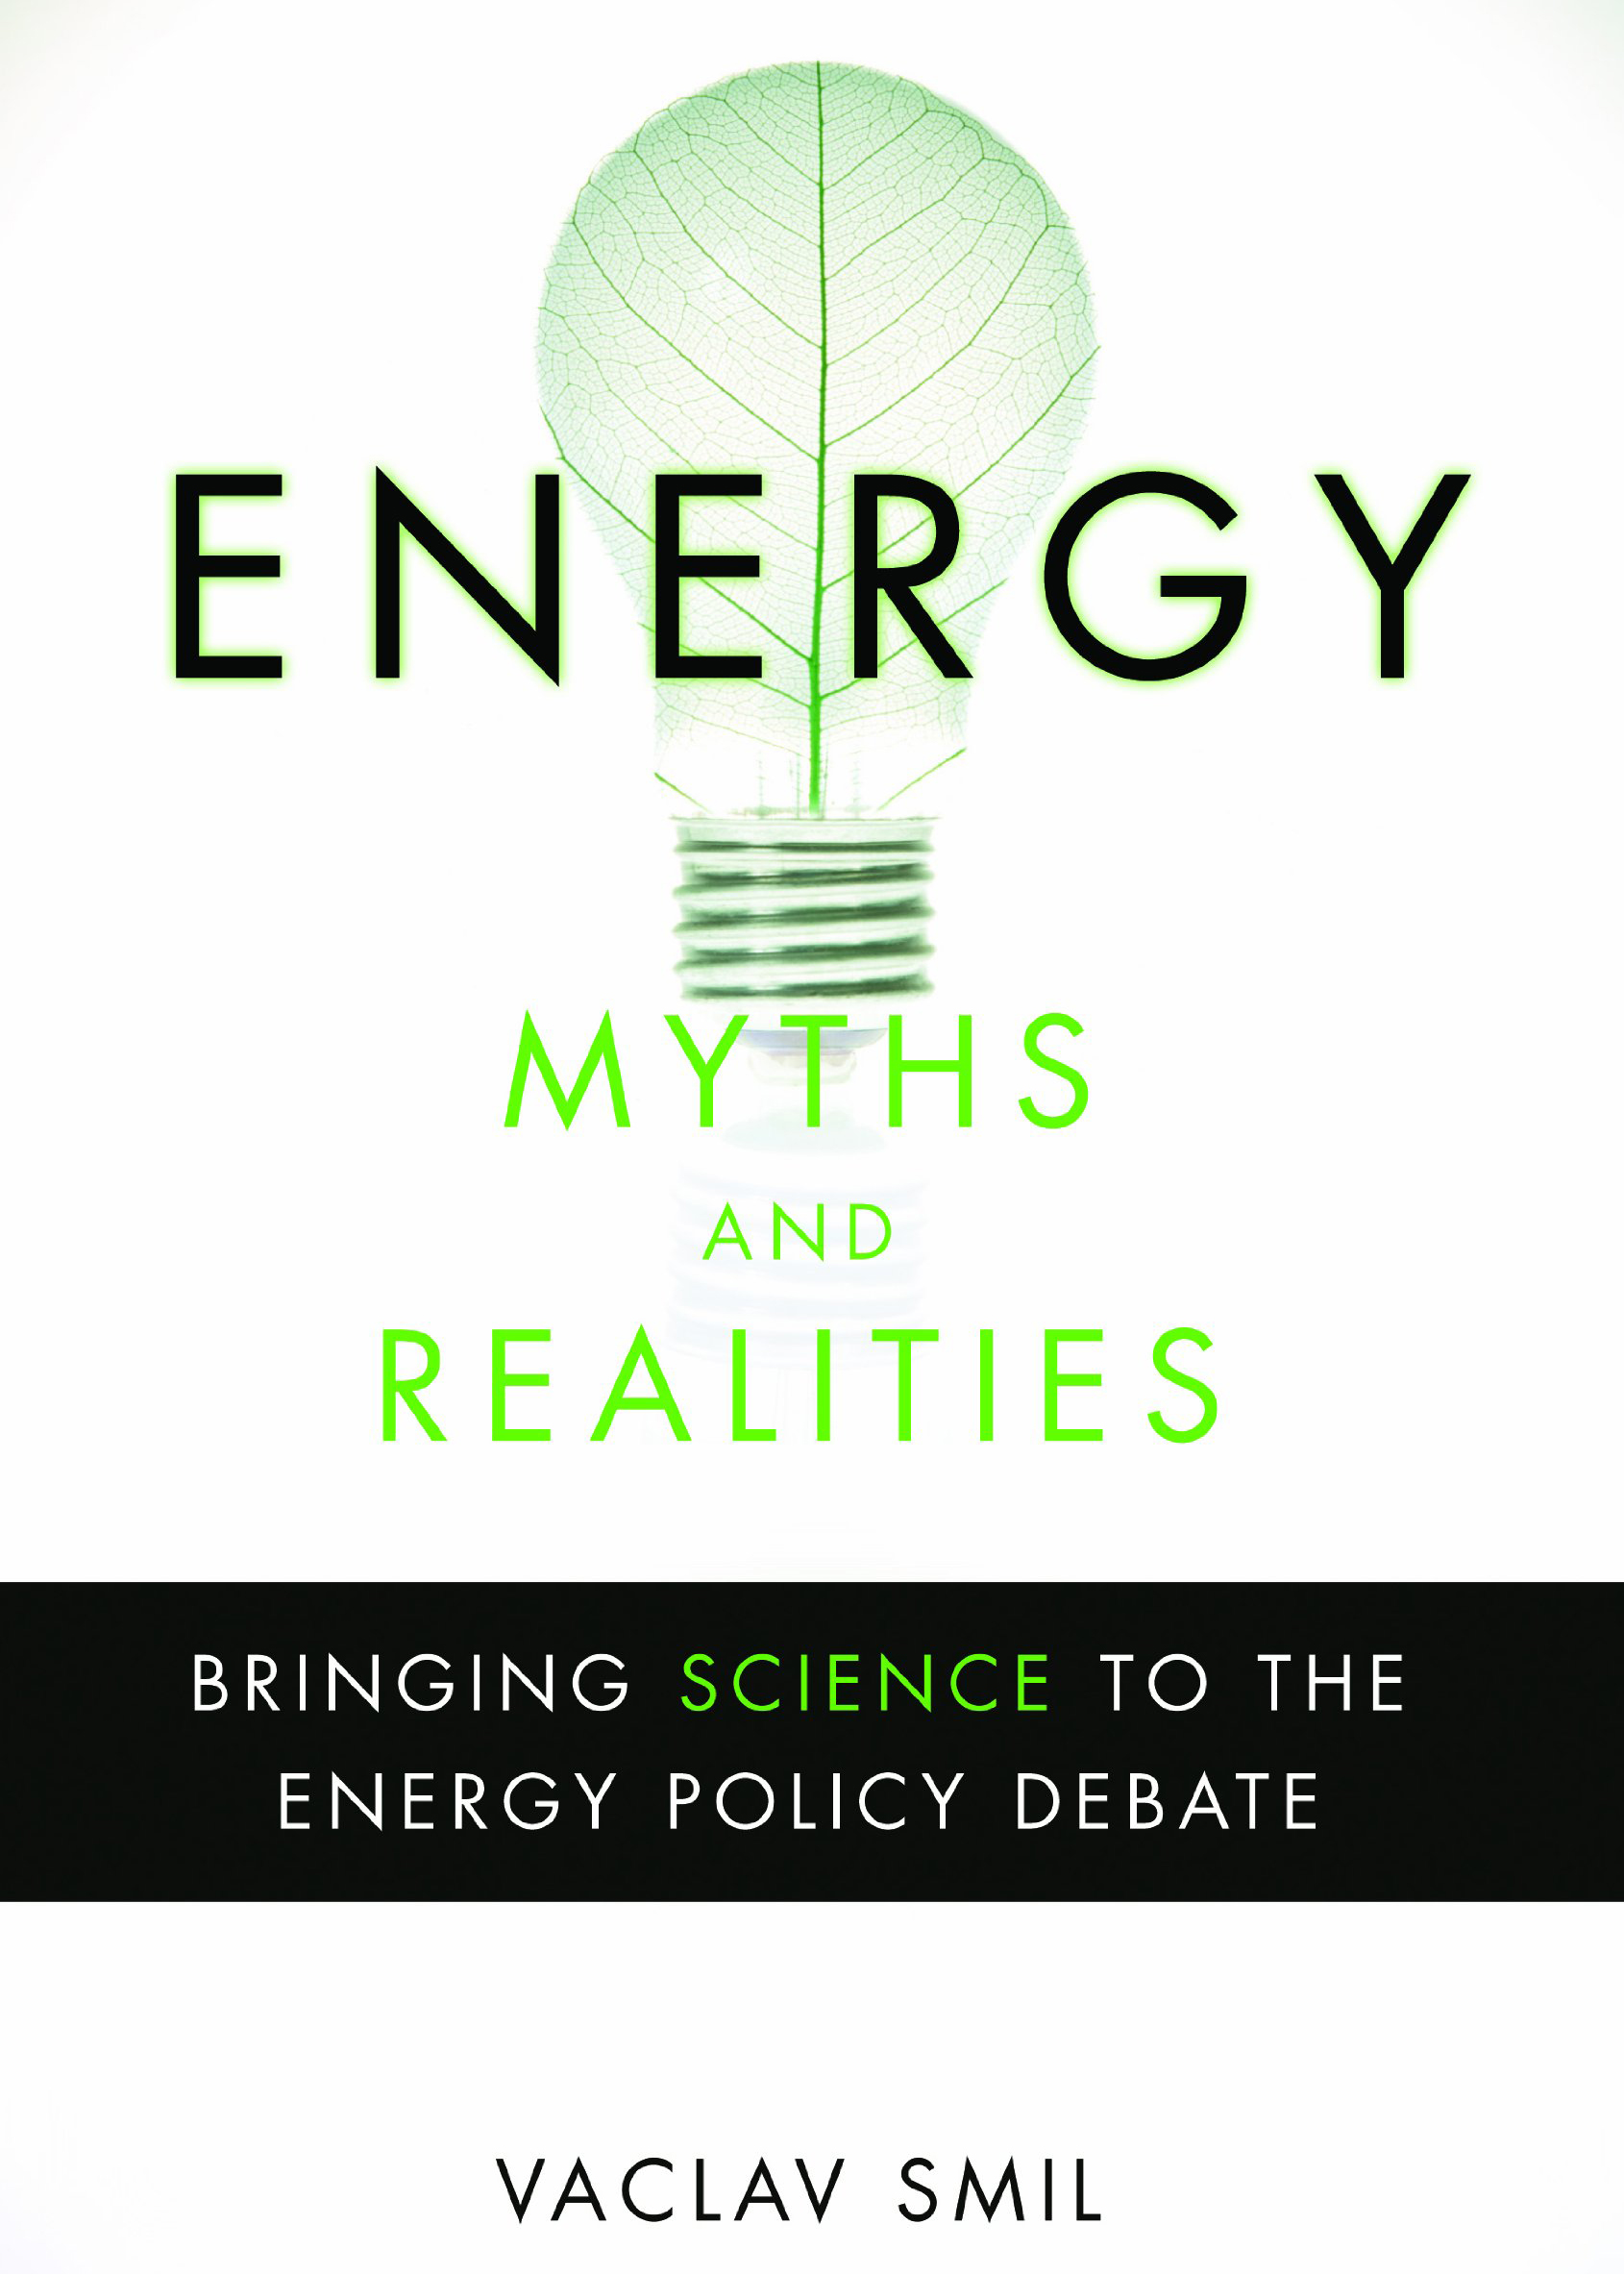 Smil, Vaclac - Energy Myths and Realities.jpg